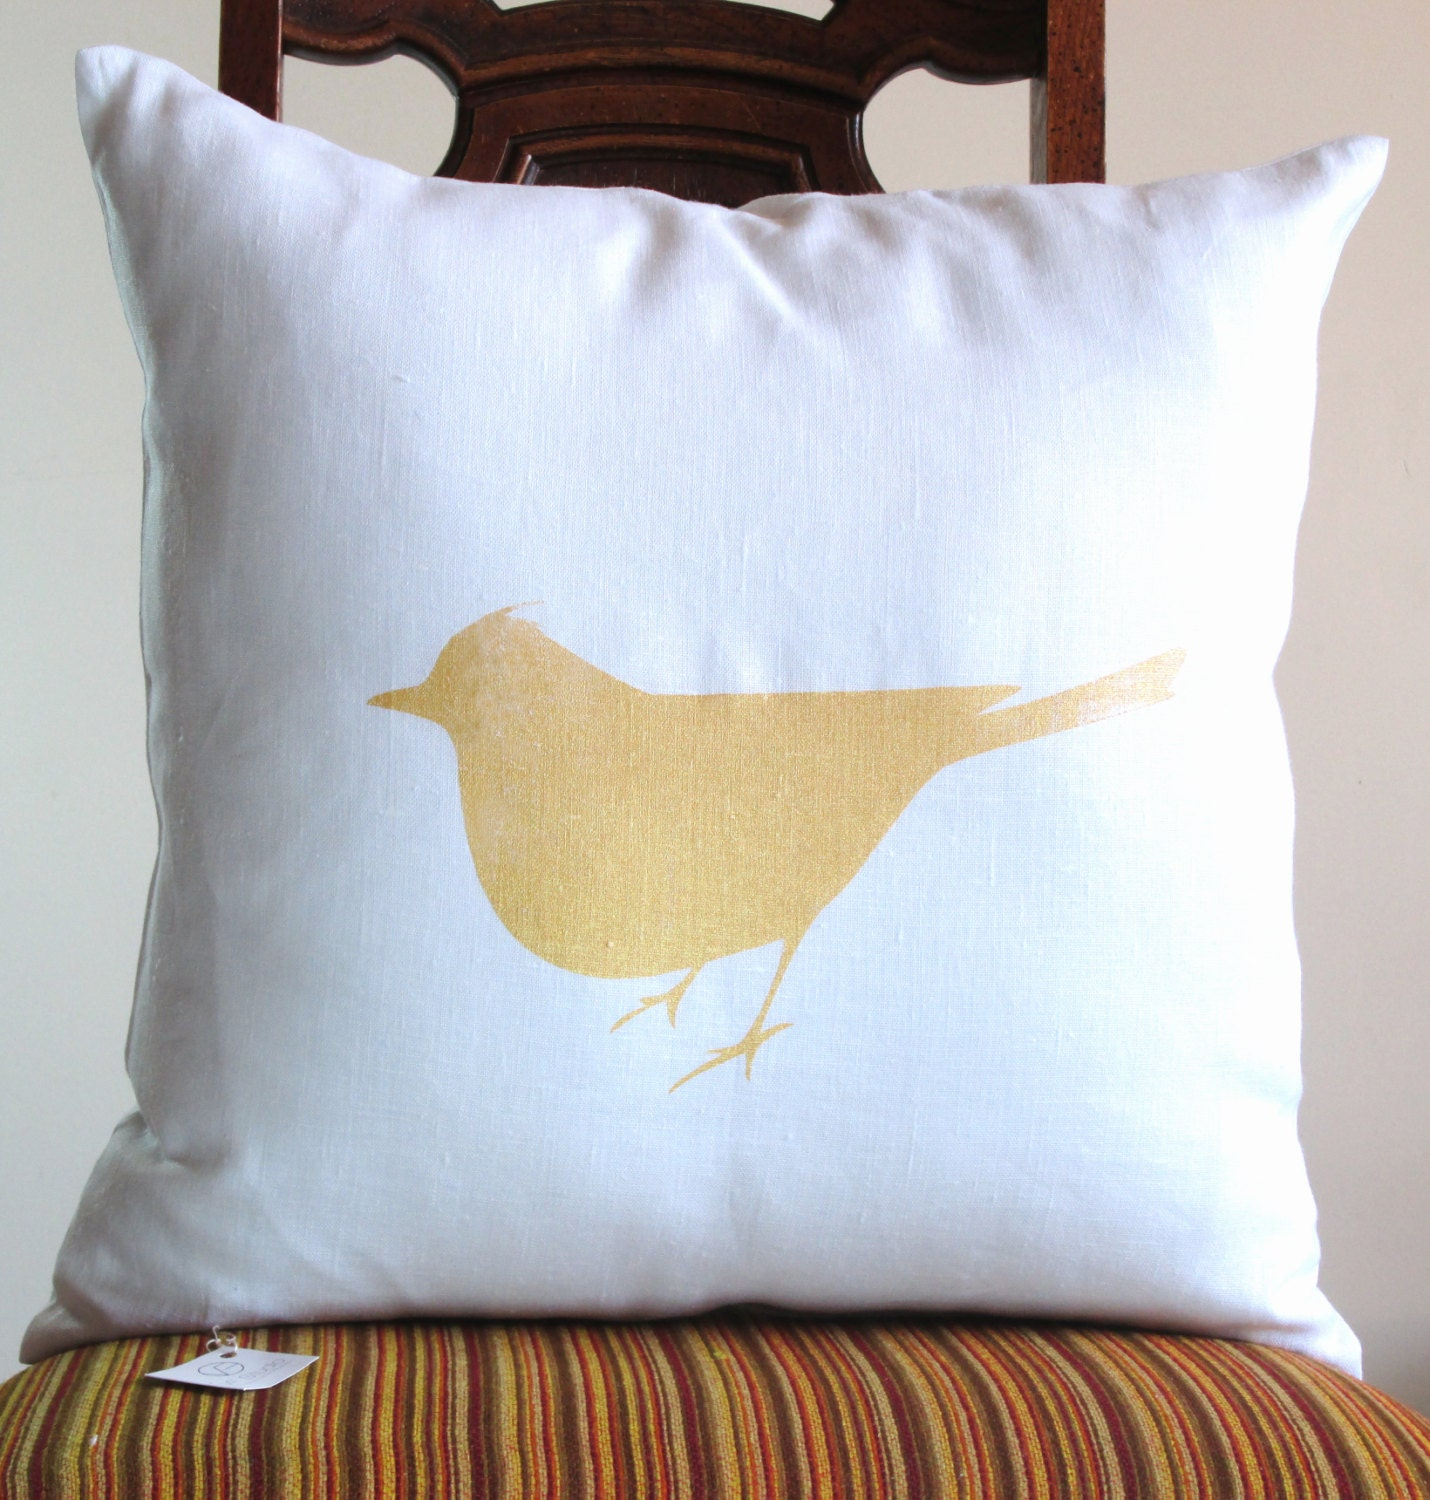 GOLD BIRD PILLOW throw 18 x 18 modern White Linen Screen